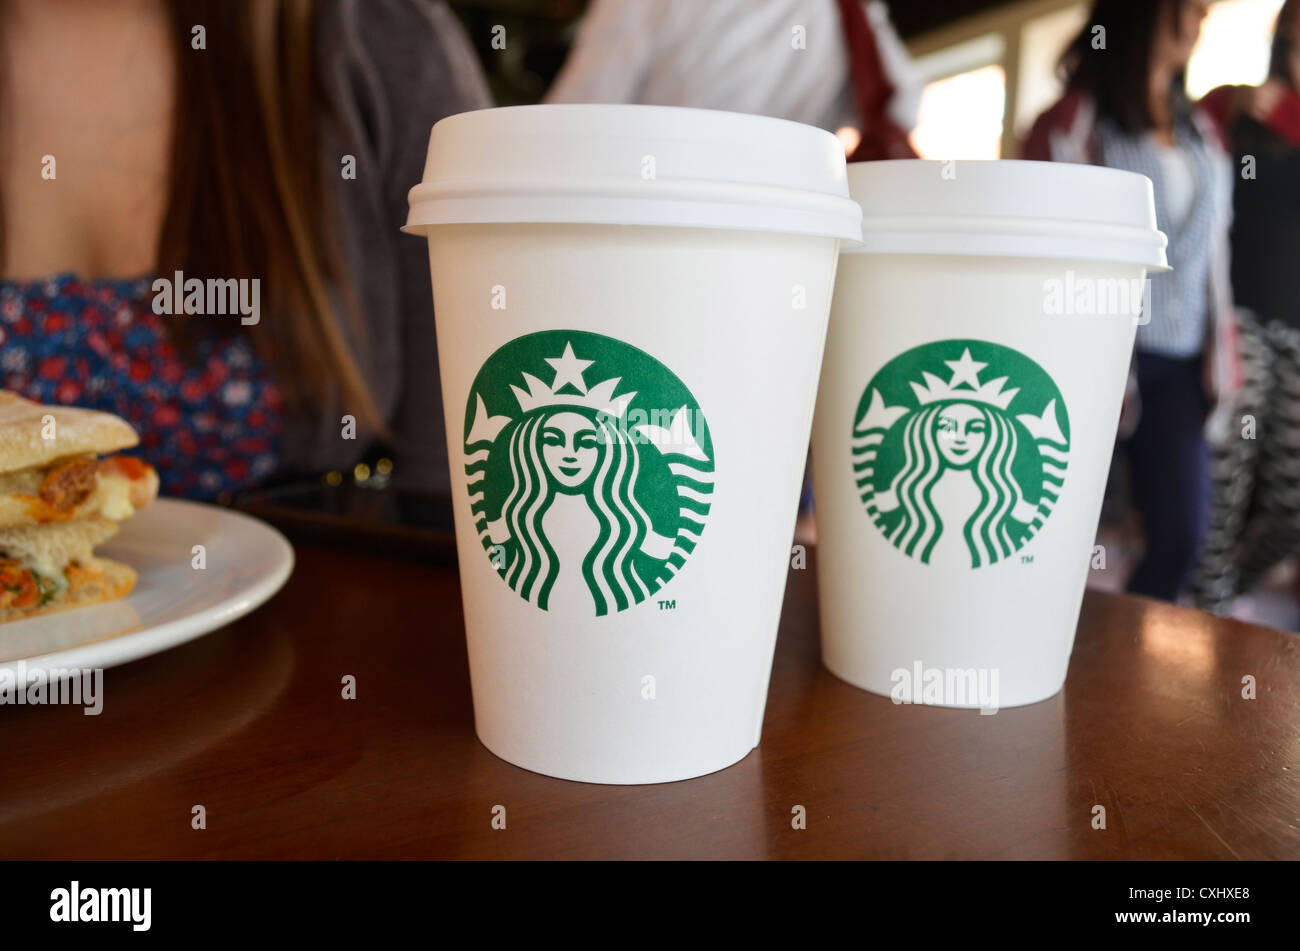 Starbucks Cups Stock Photos & Starbucks Cups Stock Images - Alamy